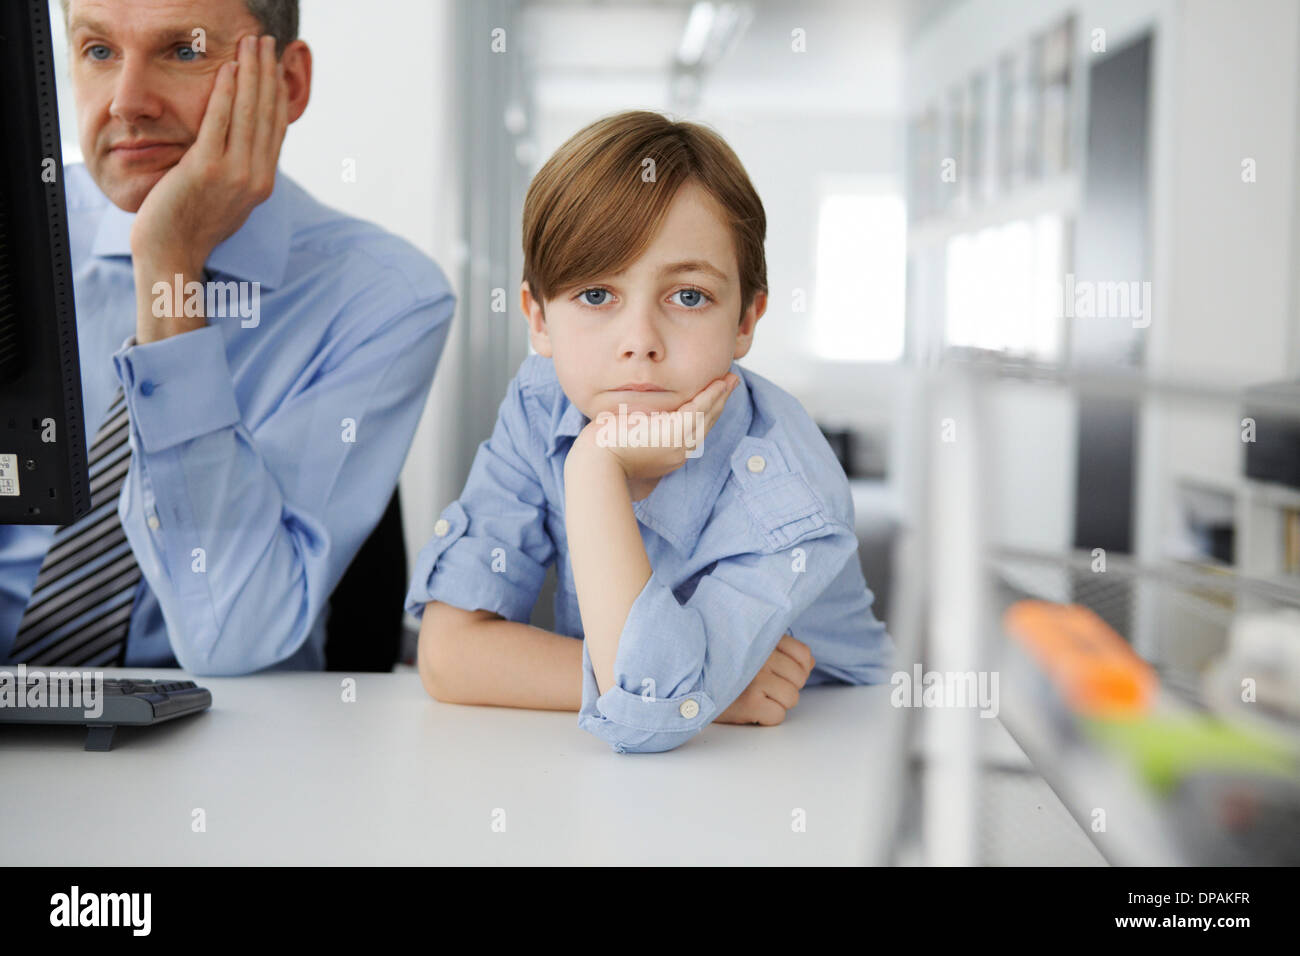 Boy leaning on elbow, father using computer - Stock Image